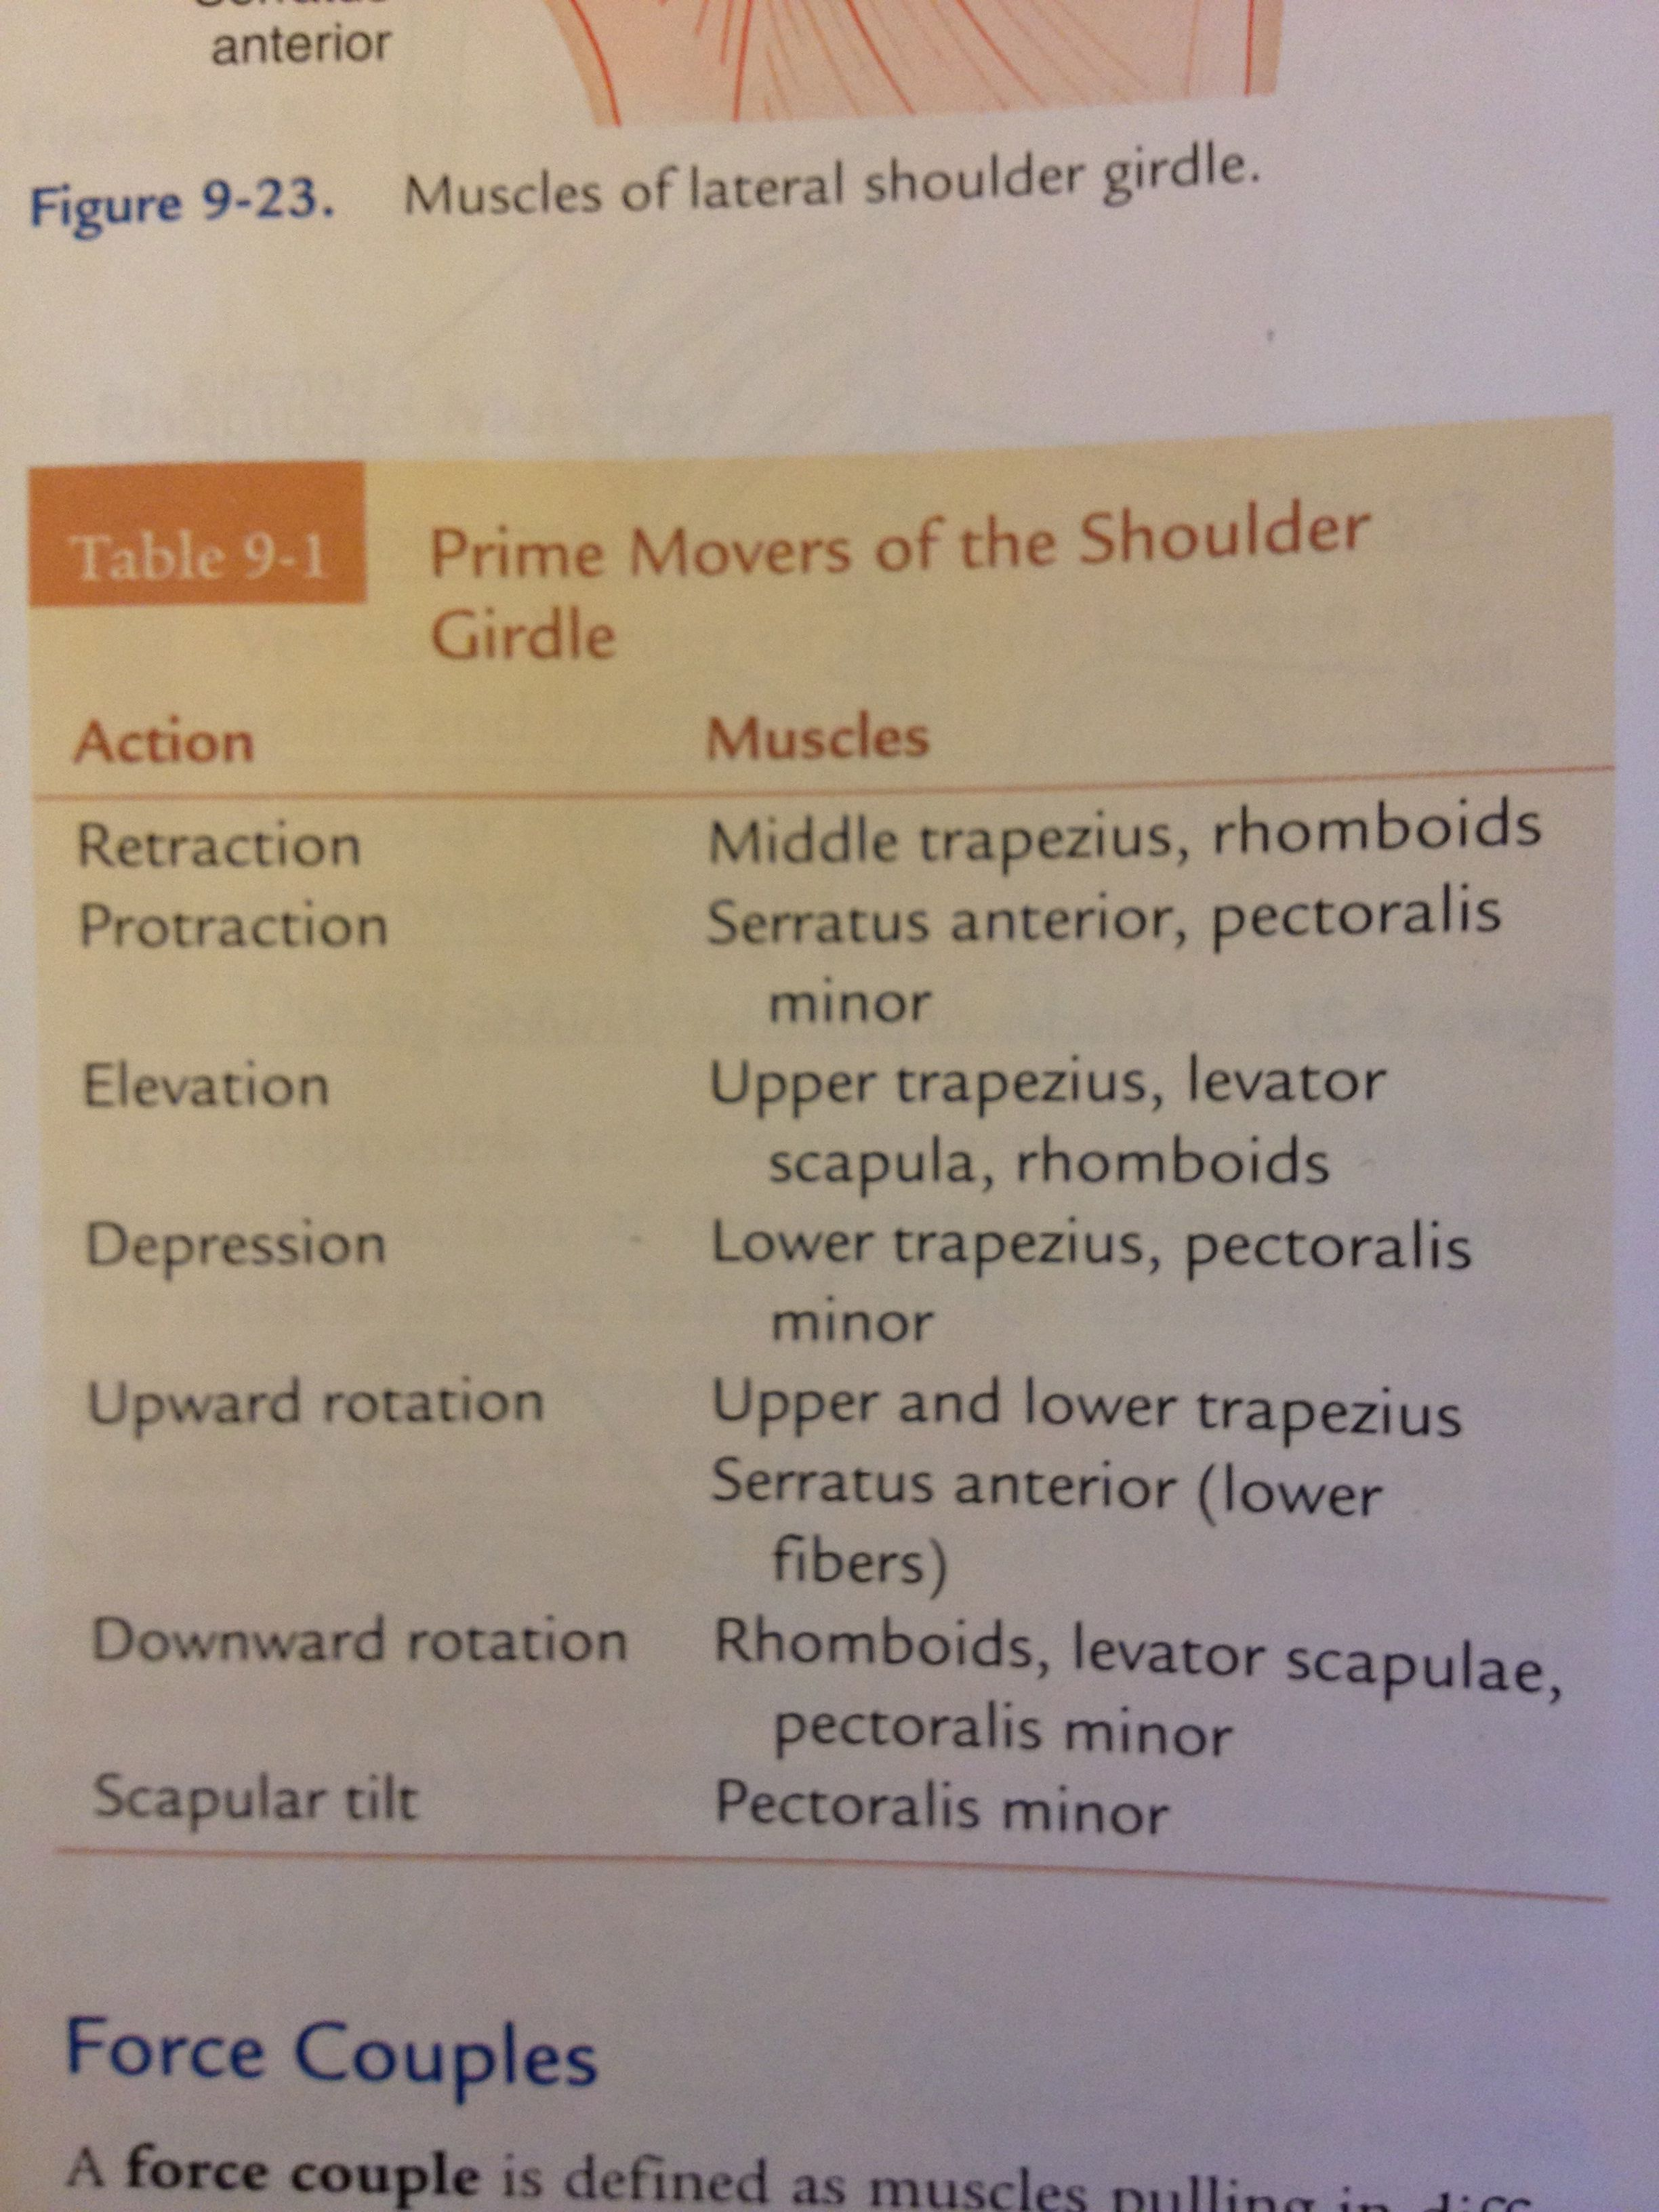 Prime Movers Of The Shoulder Girdle From Cilincal Kinesiology